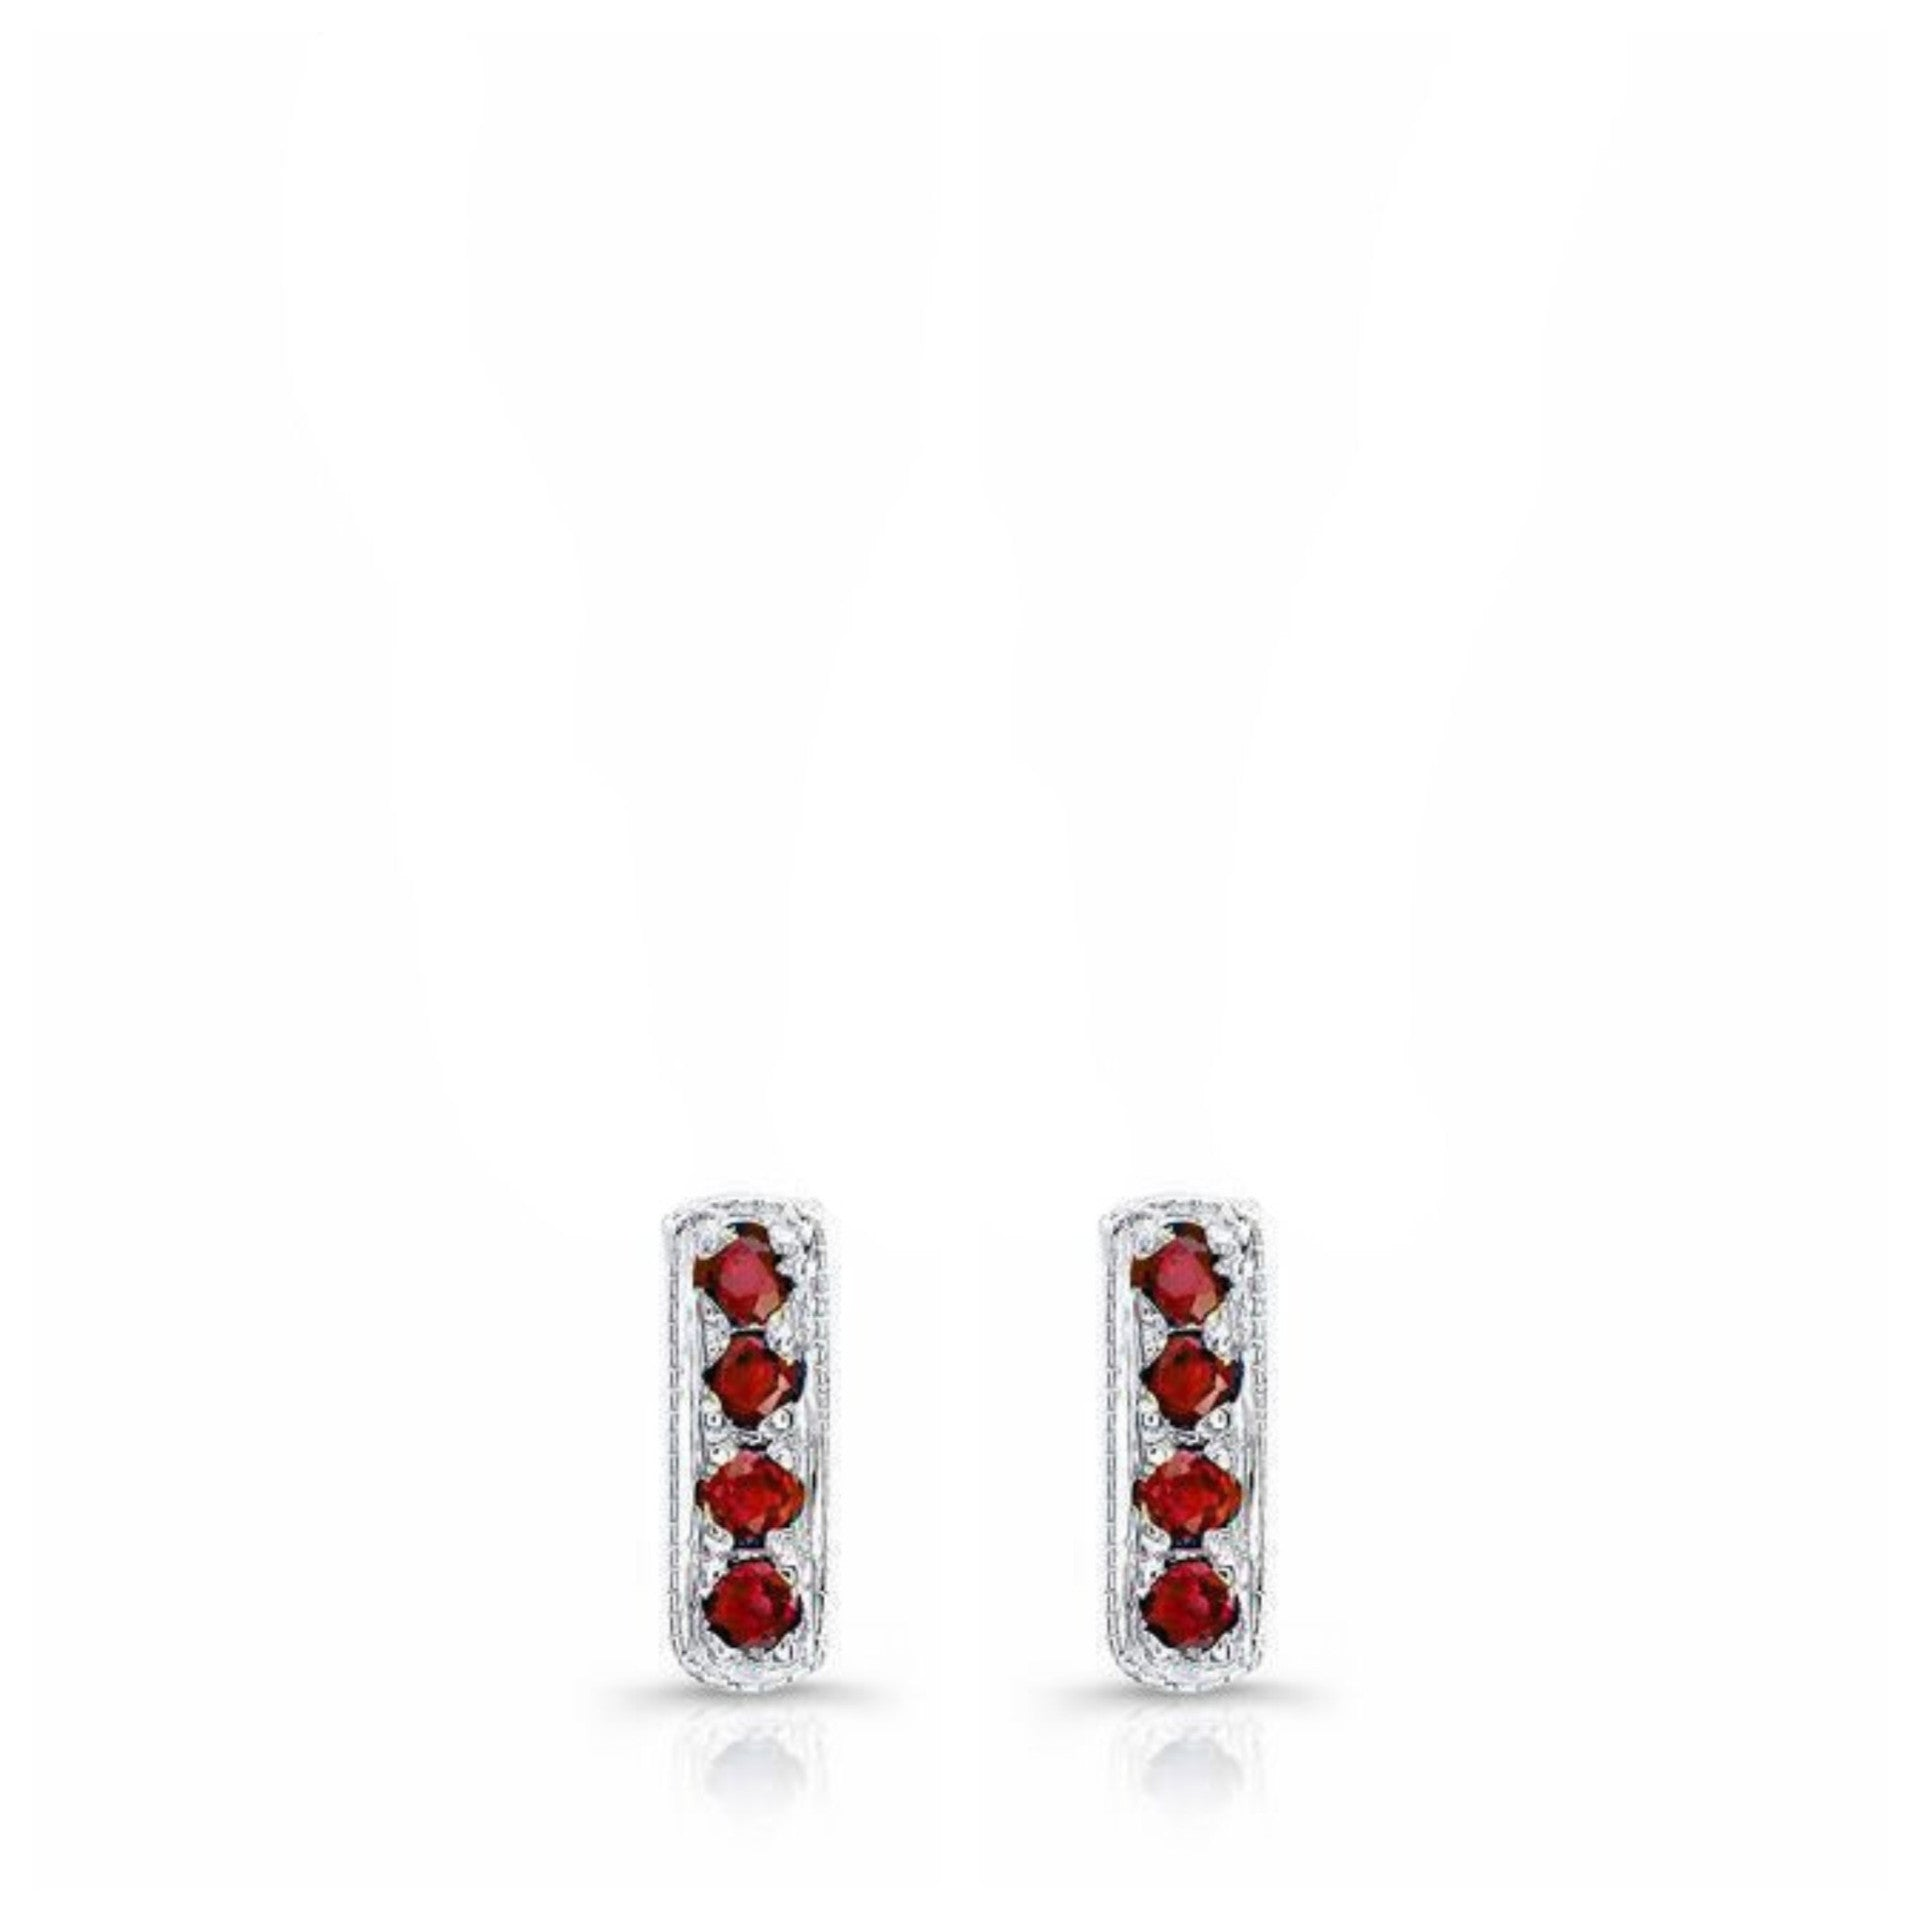 Mini Bar Studs in 18k White Gold and Burmese Rubies